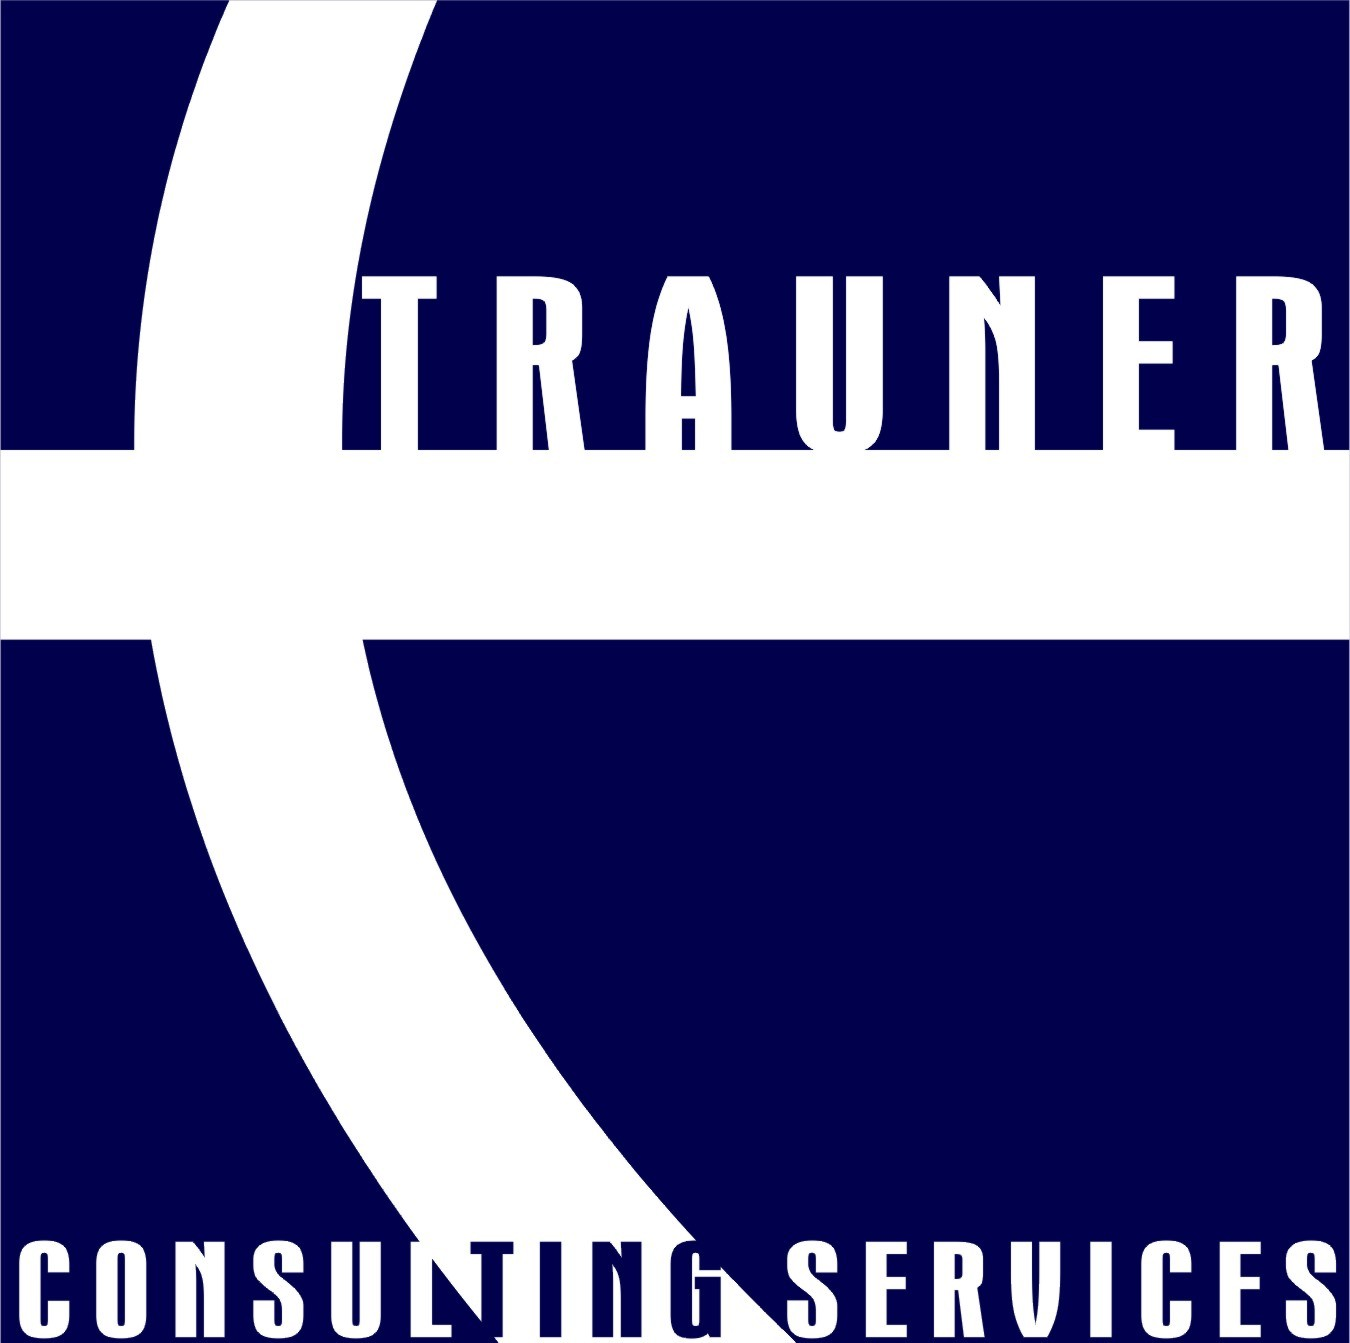 trauner_consulting_services_logo